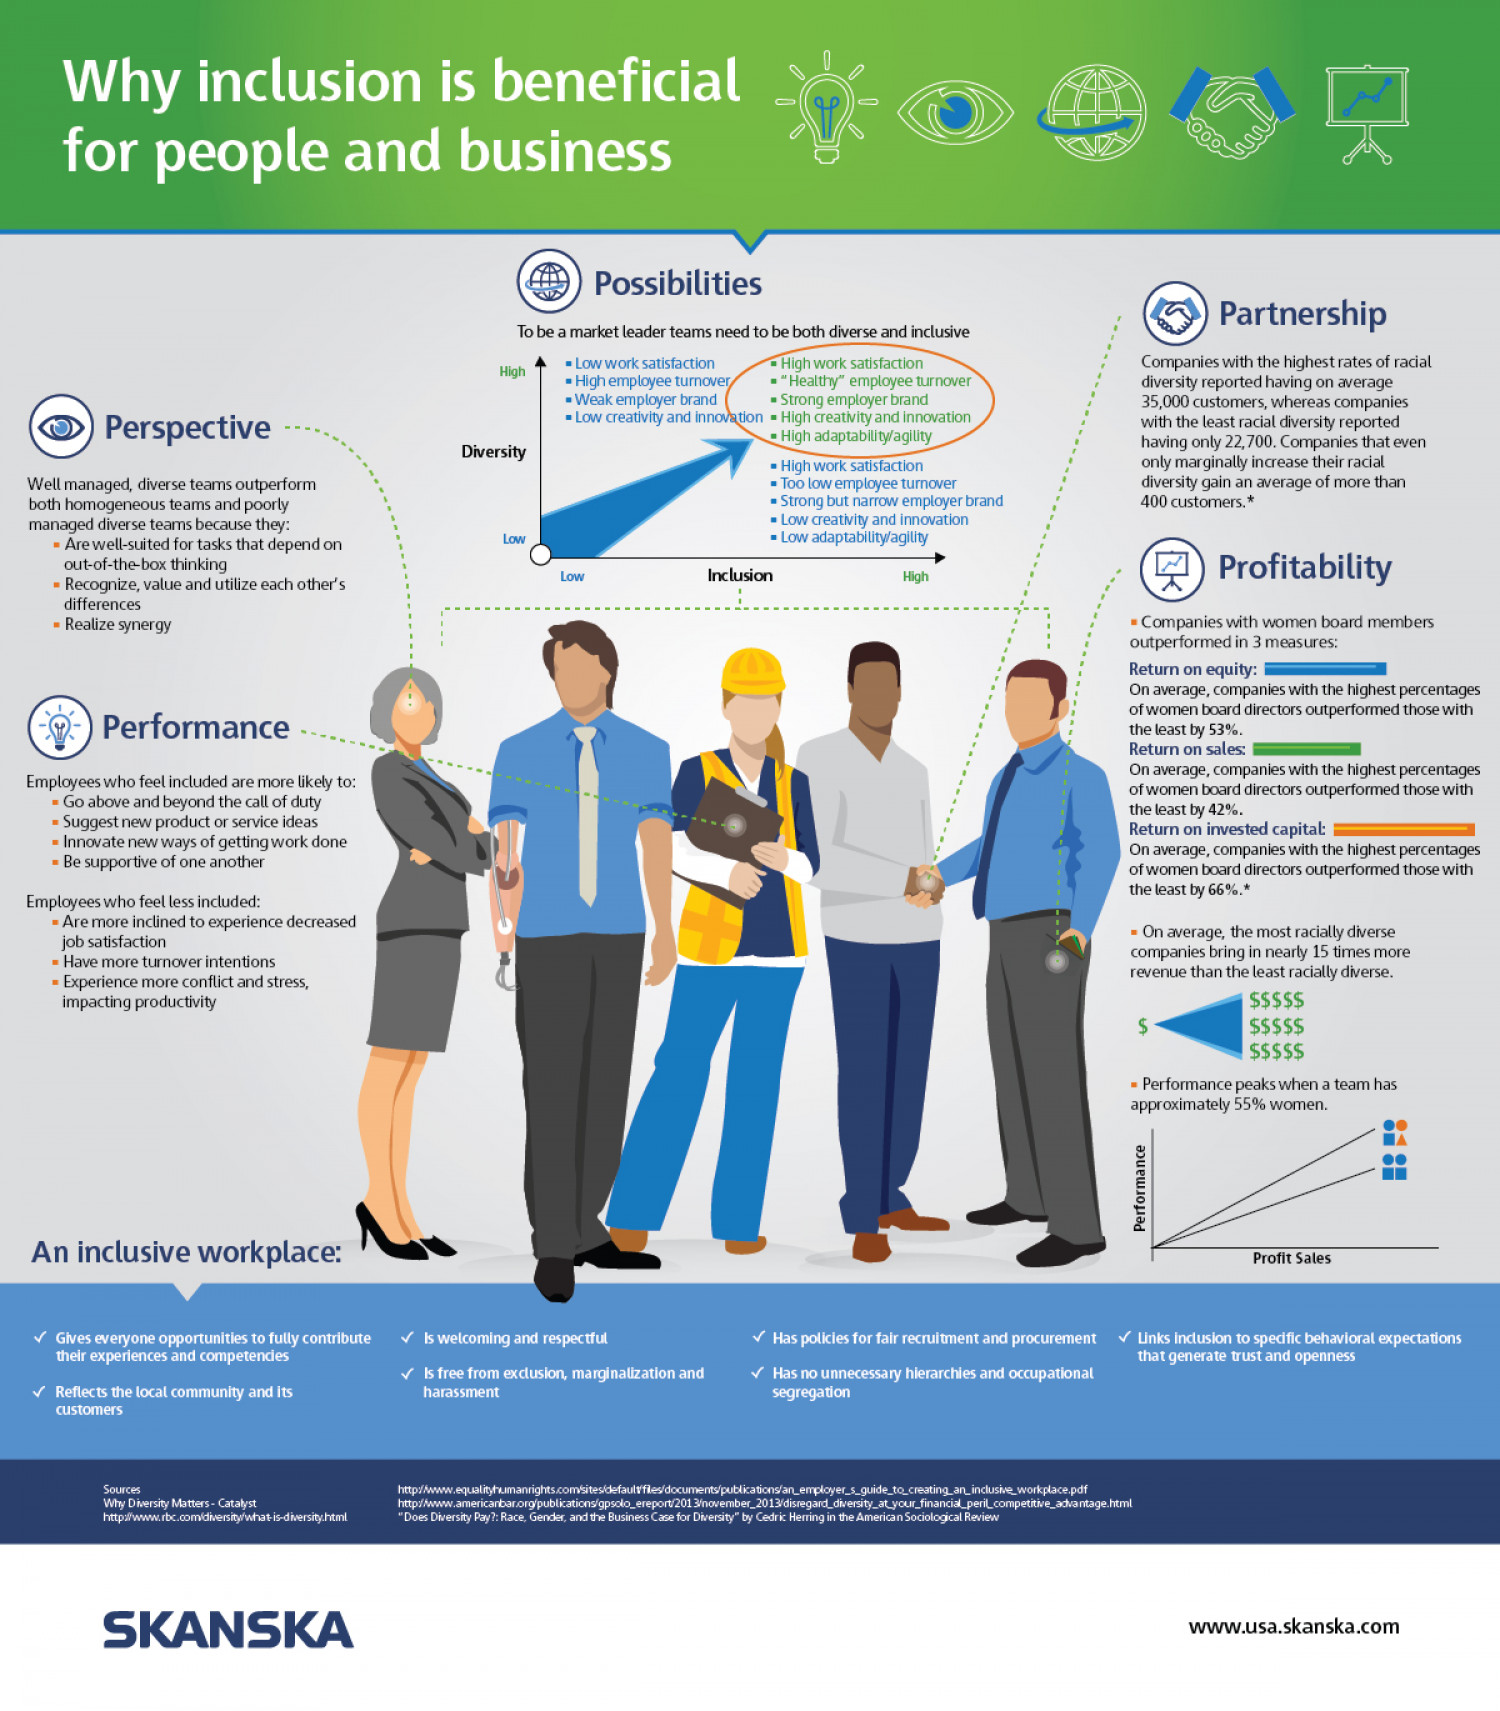 Why inclusion is beneficial for people and business Infographic